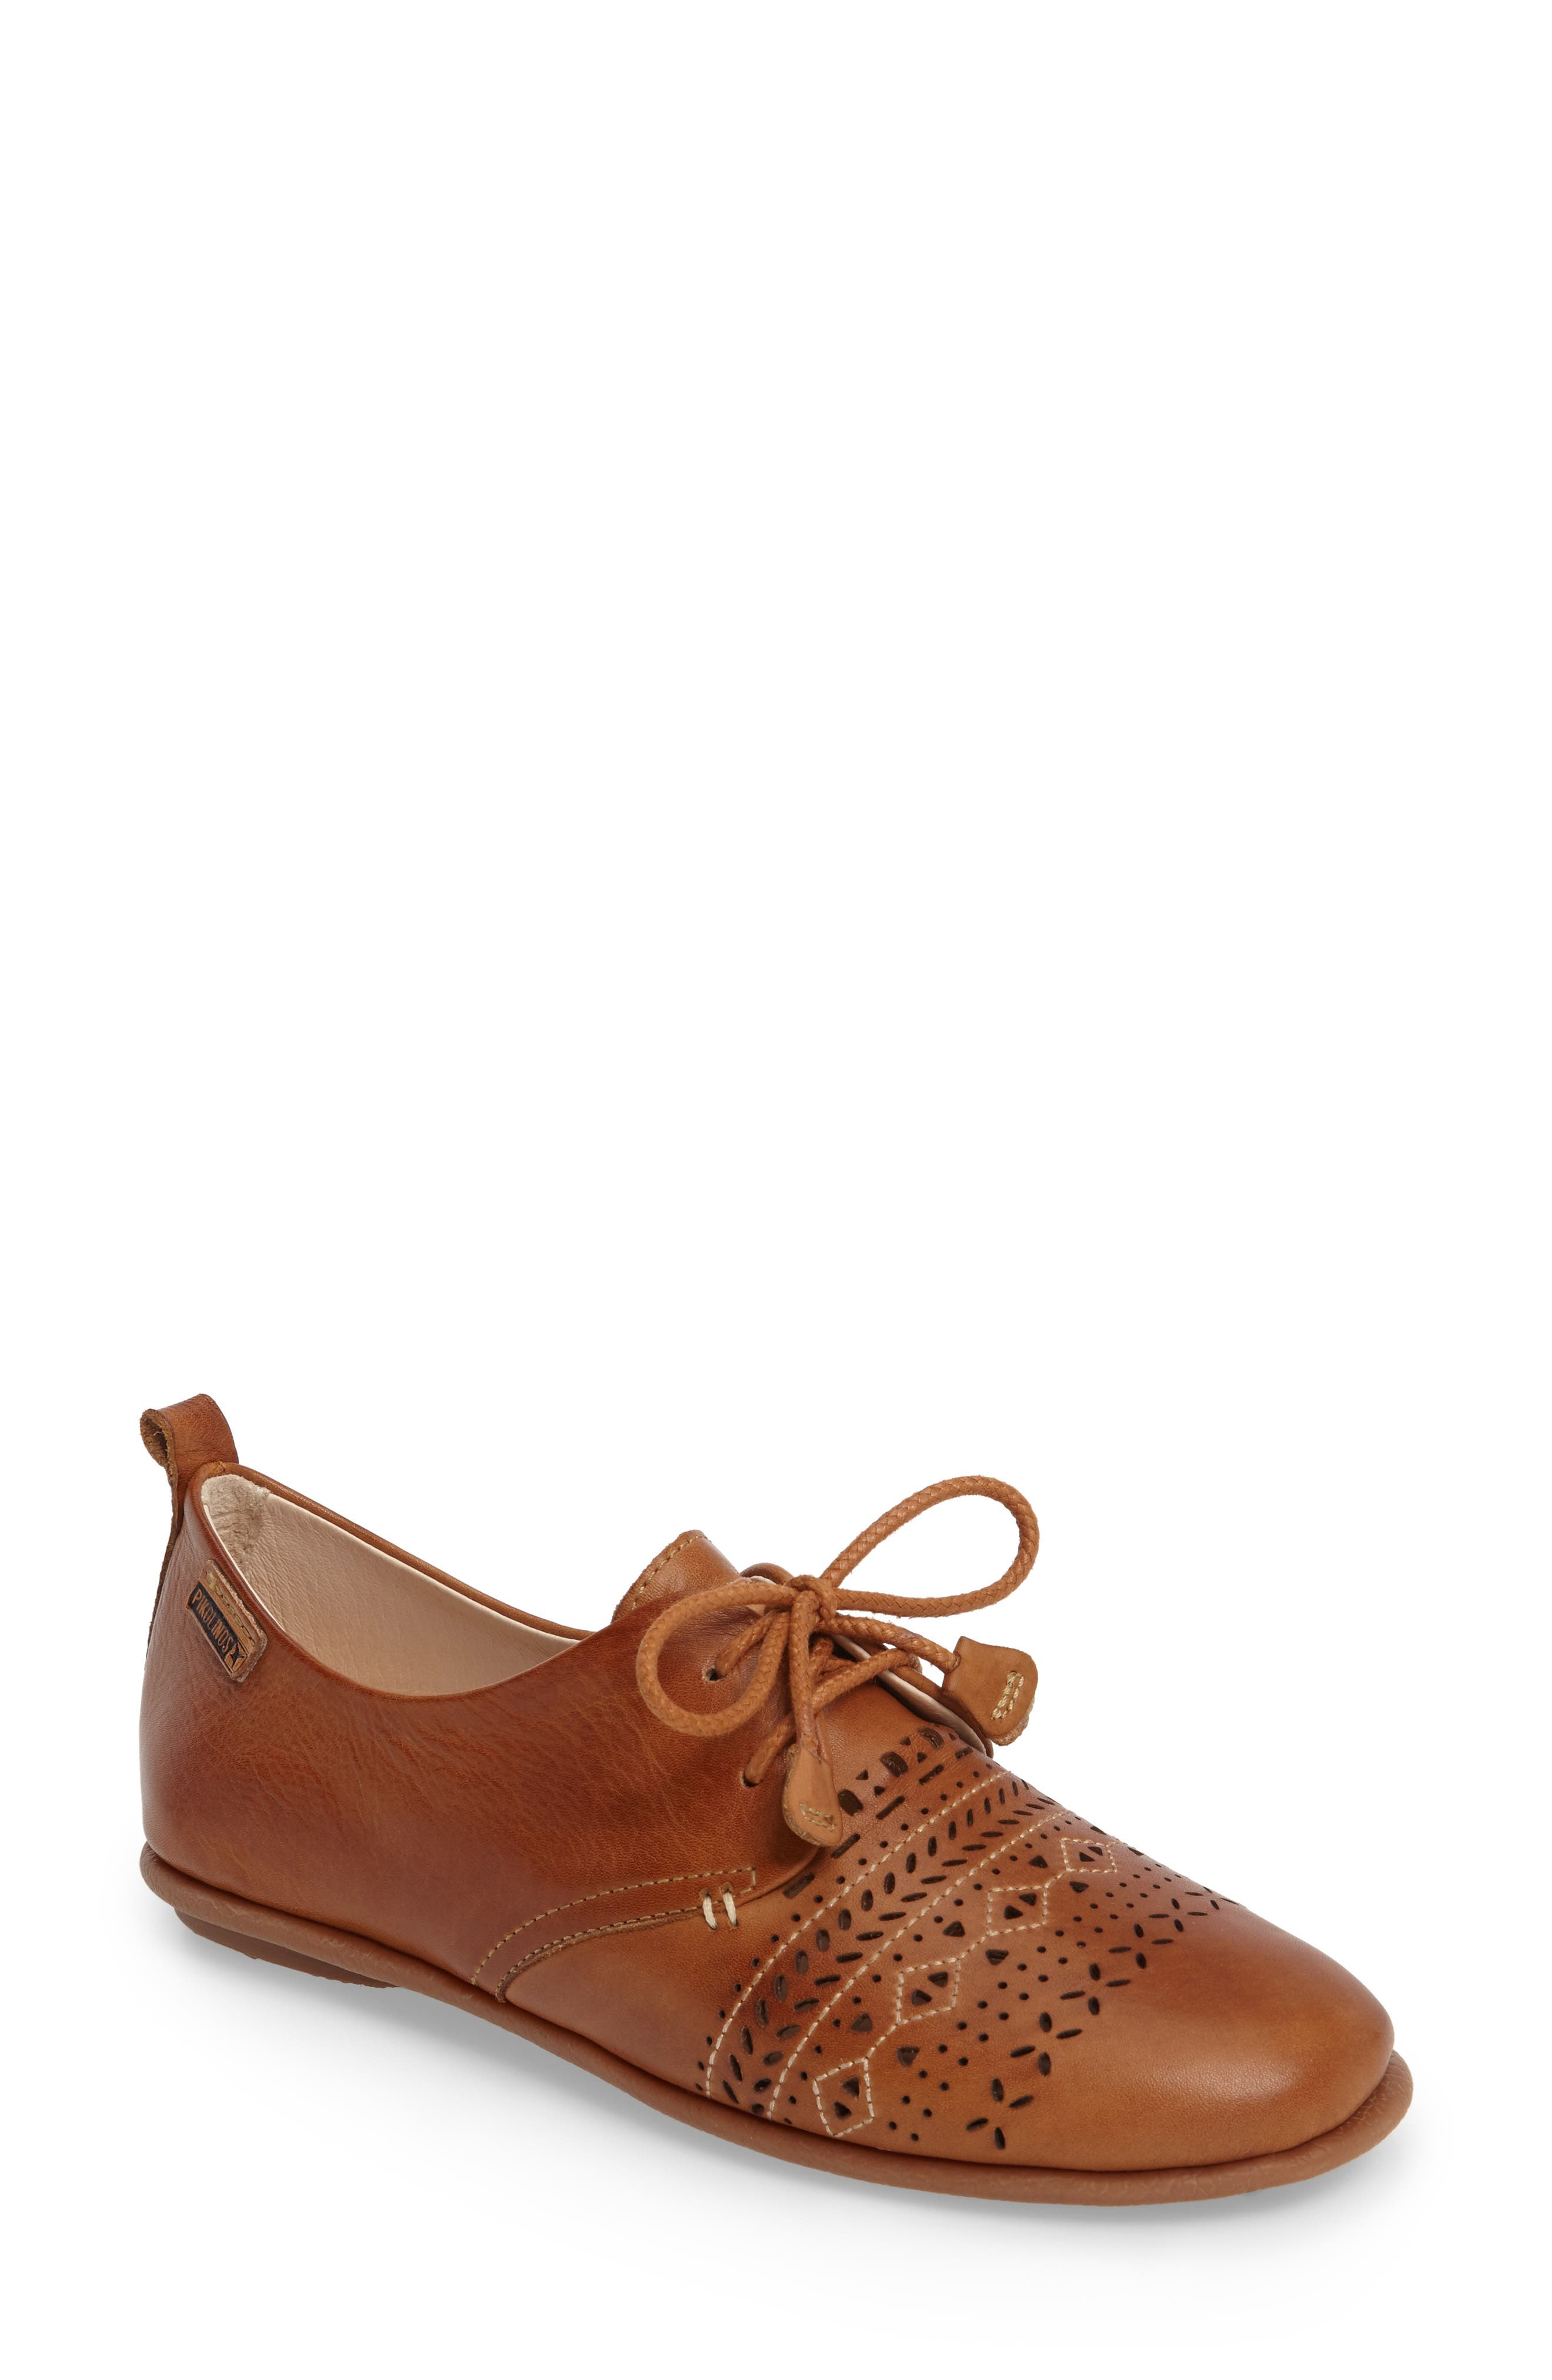 Calabria Derby Flat,                             Main thumbnail 1, color,                             200